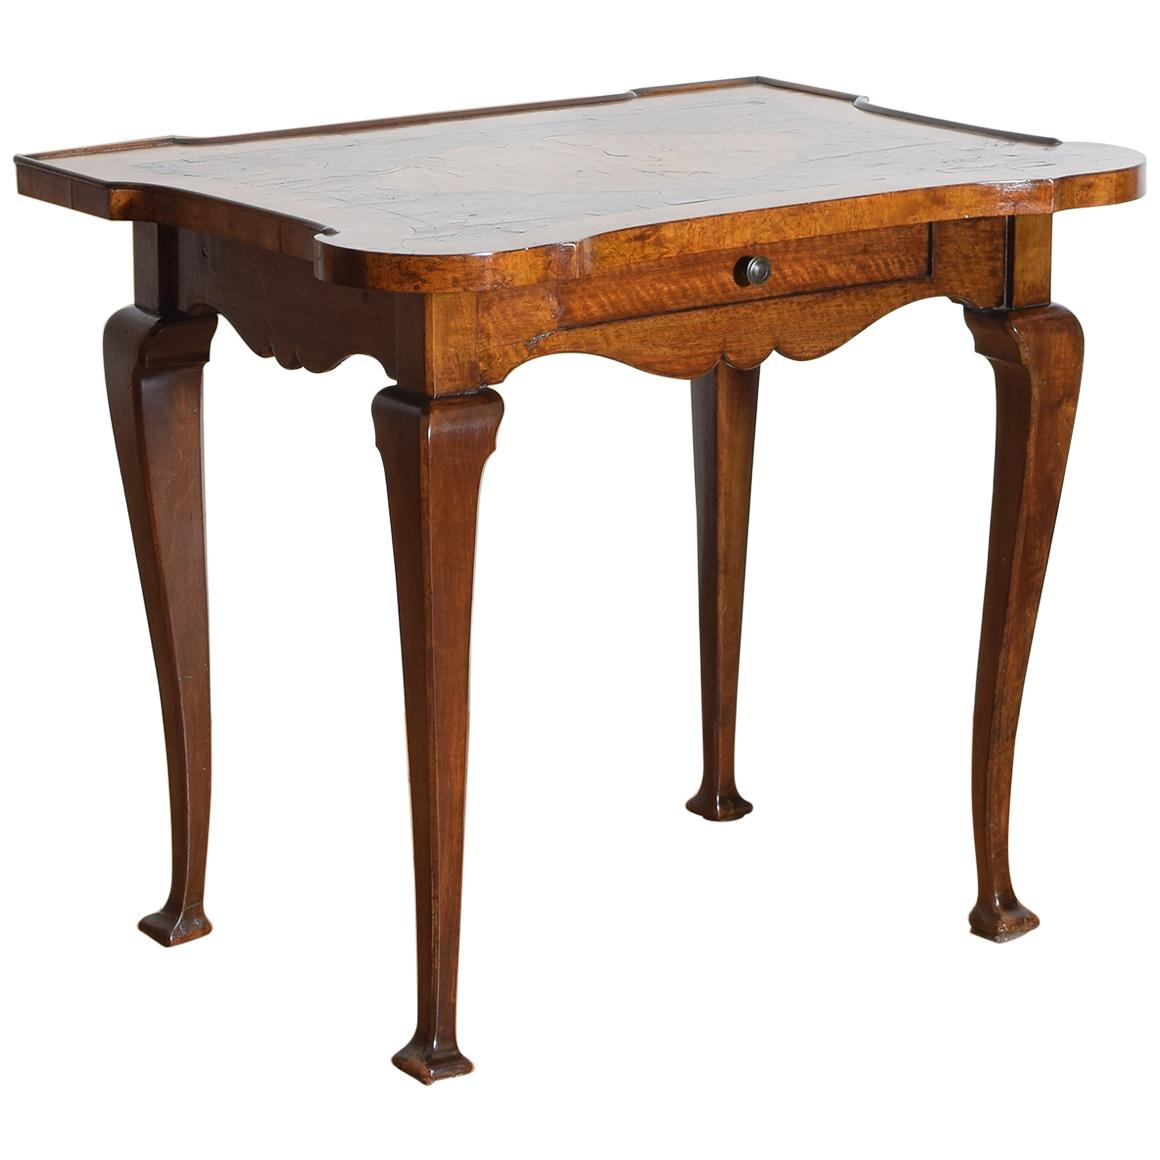 Italian, Lombardia, Shaped Walnut and Inlaid 1-Drawer Table, 18th Century